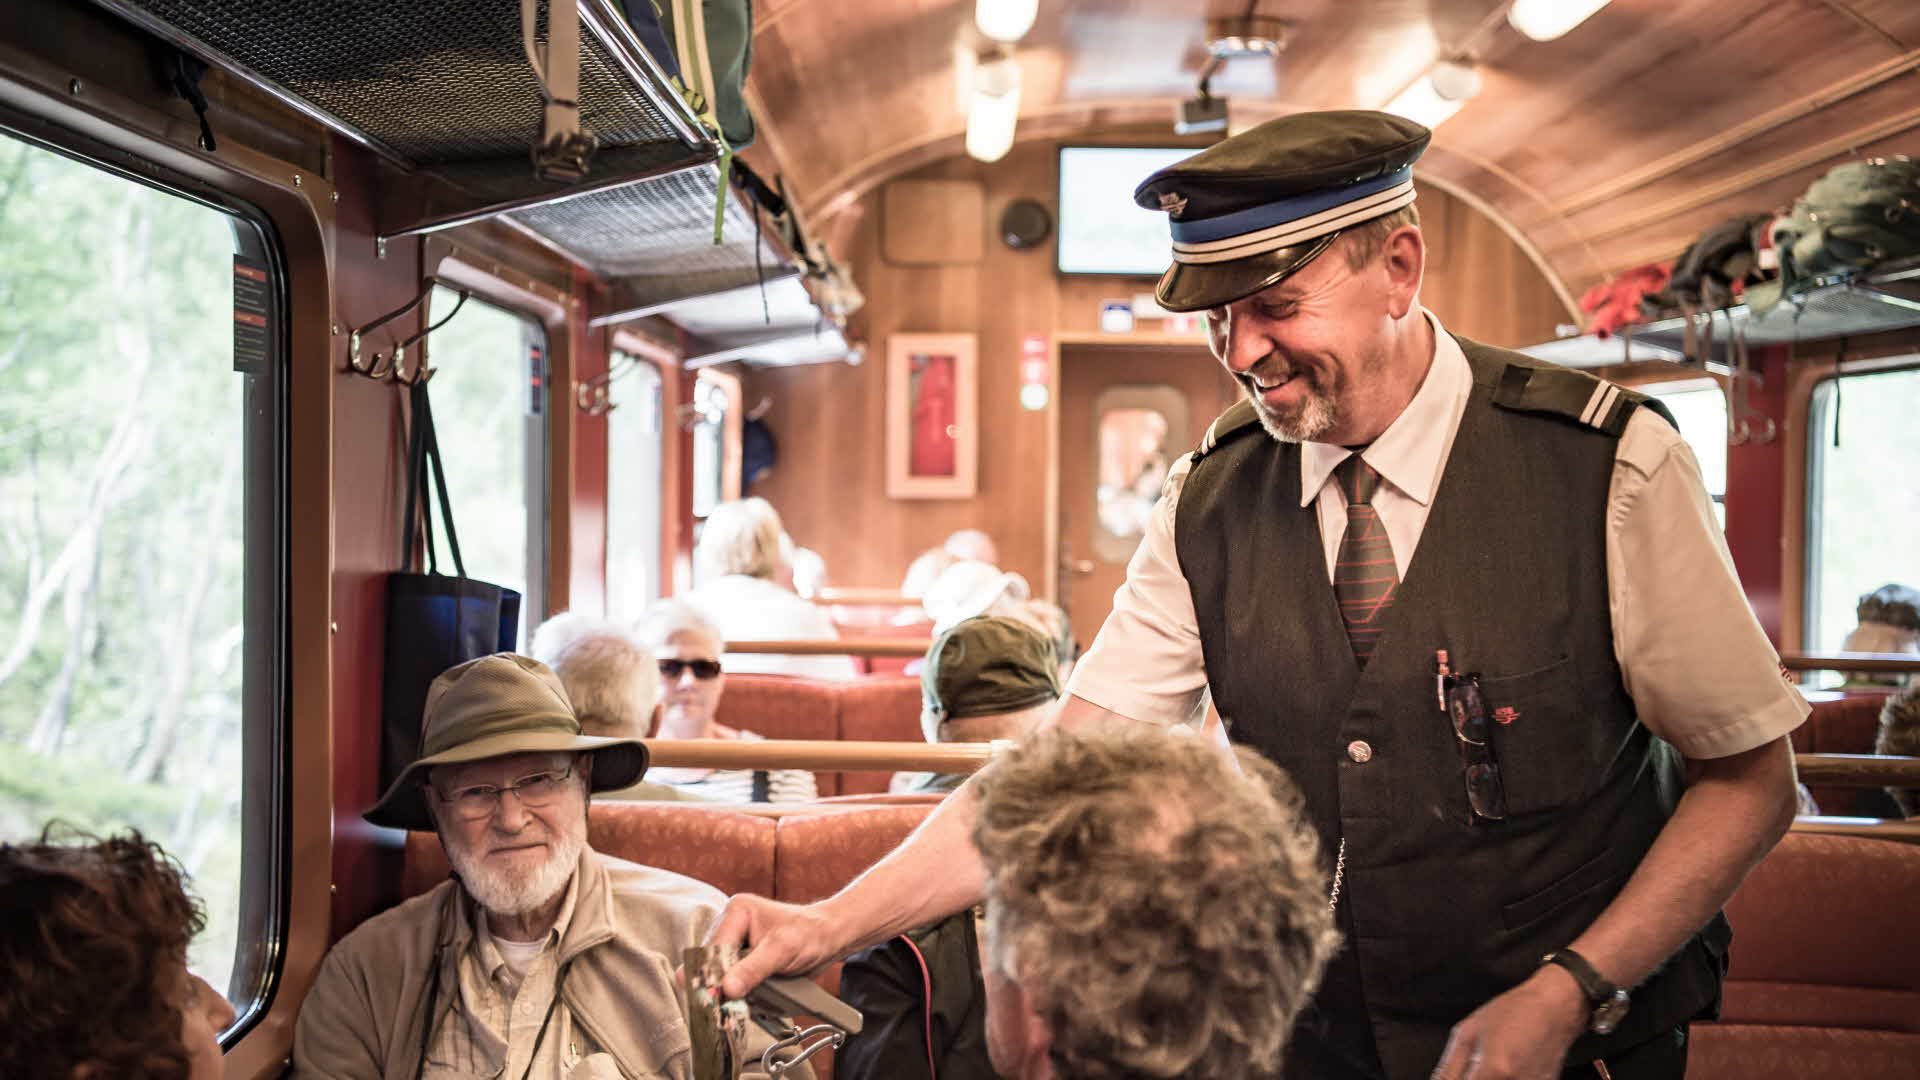 A conductor checks tickets on the Flåm Railway